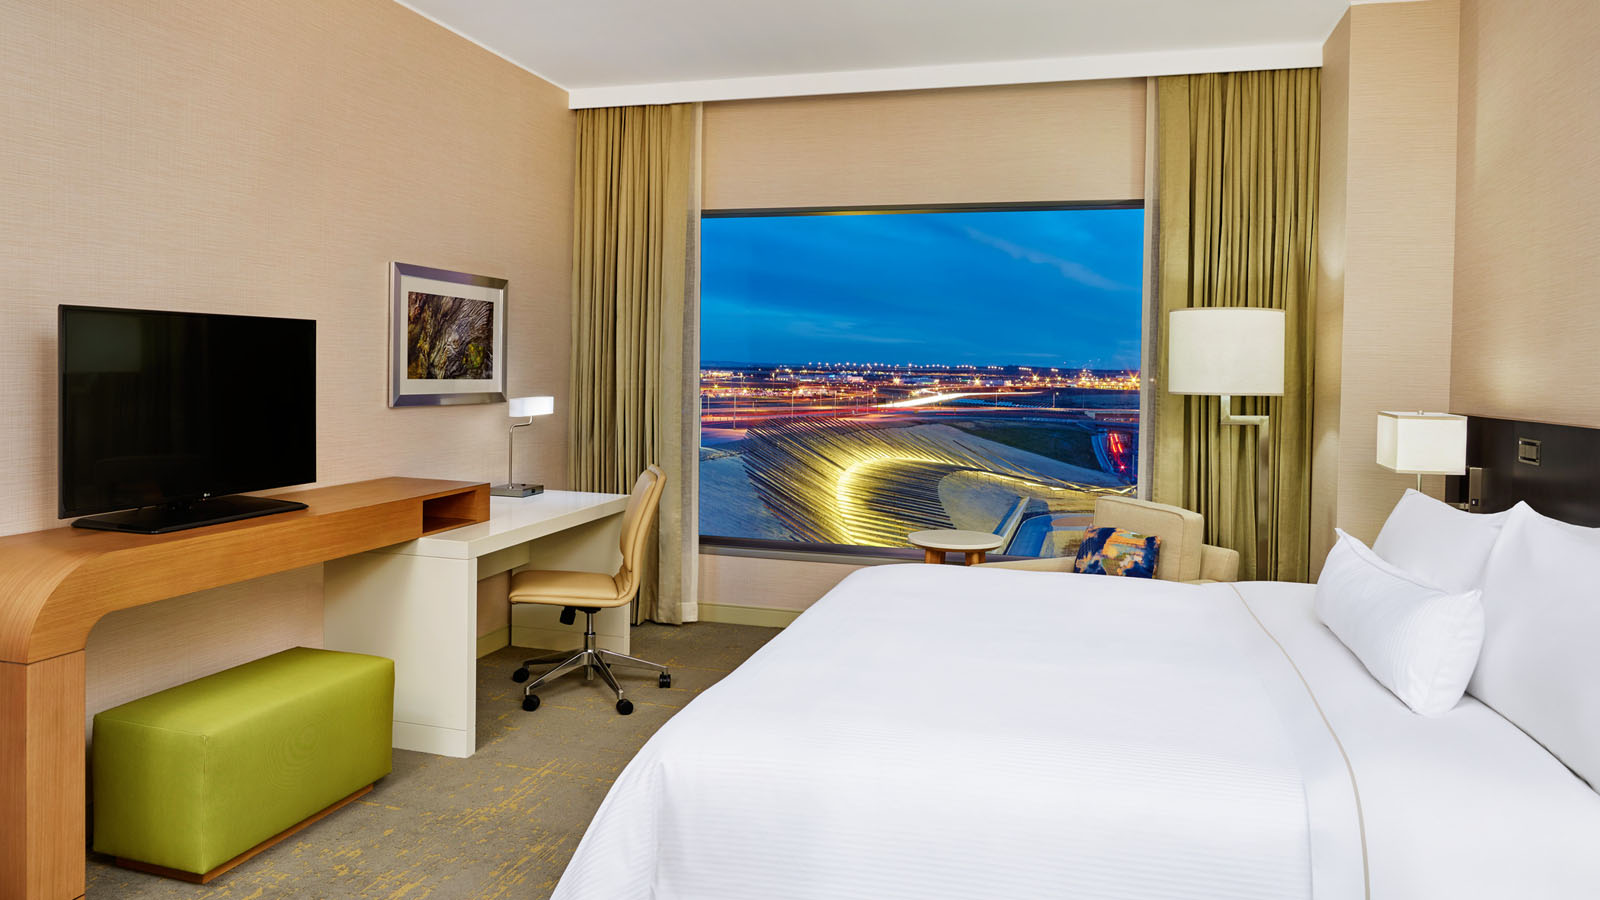 Denver Airport Lodging - Deluxe Room - The Westin Denver International Airport